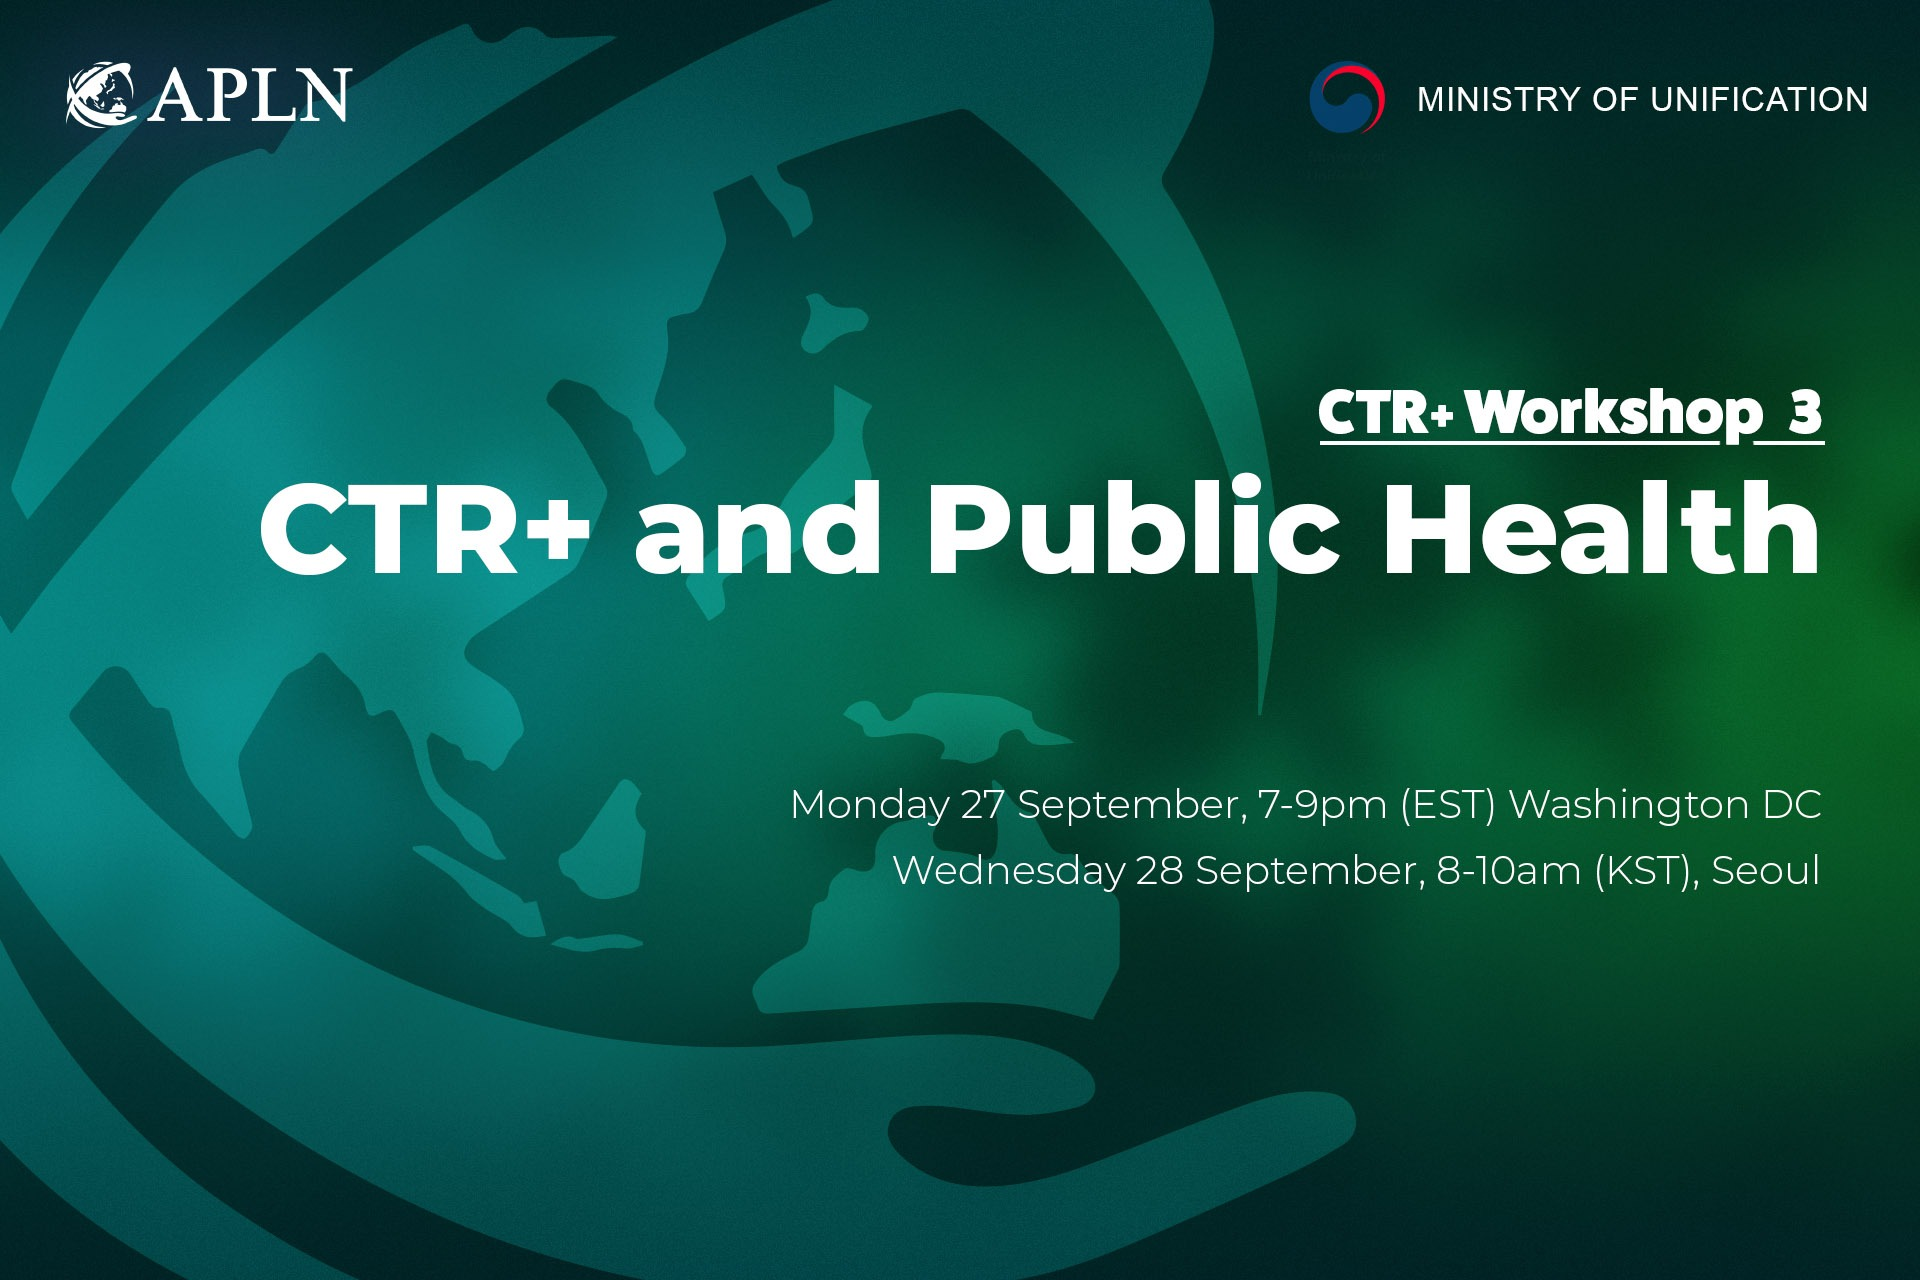 [Webinar 3] CTR+ and Public Health in the DPRK